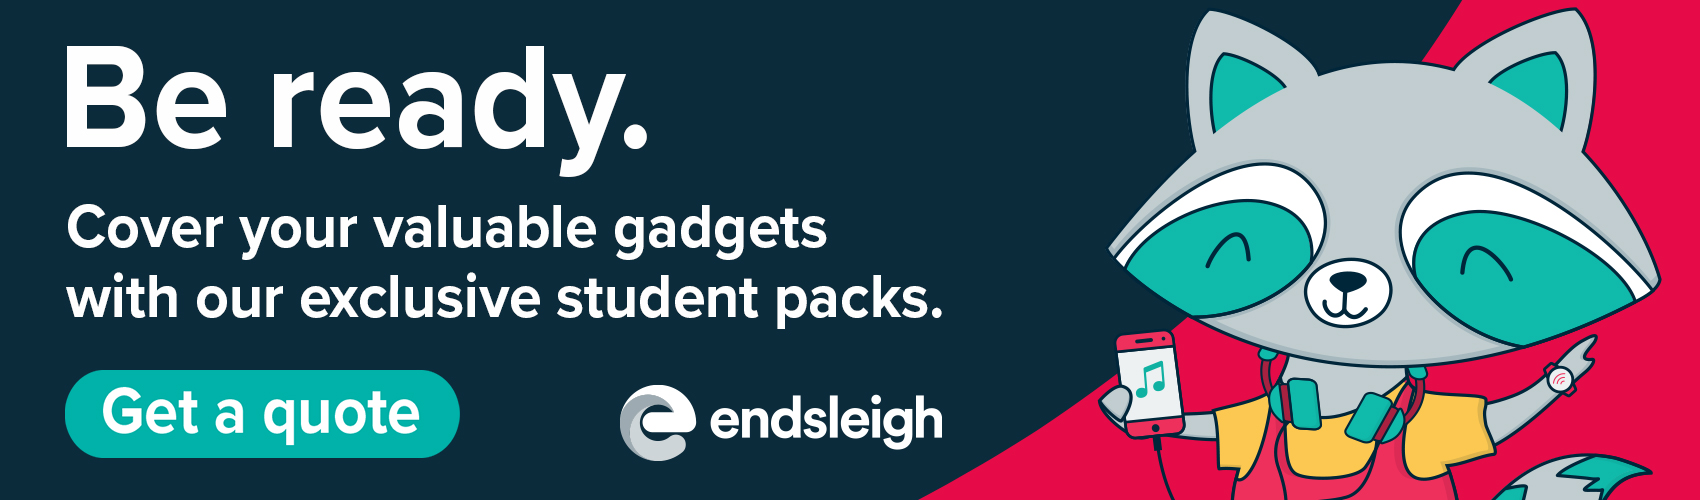 Gadget insurance from Endsleigh